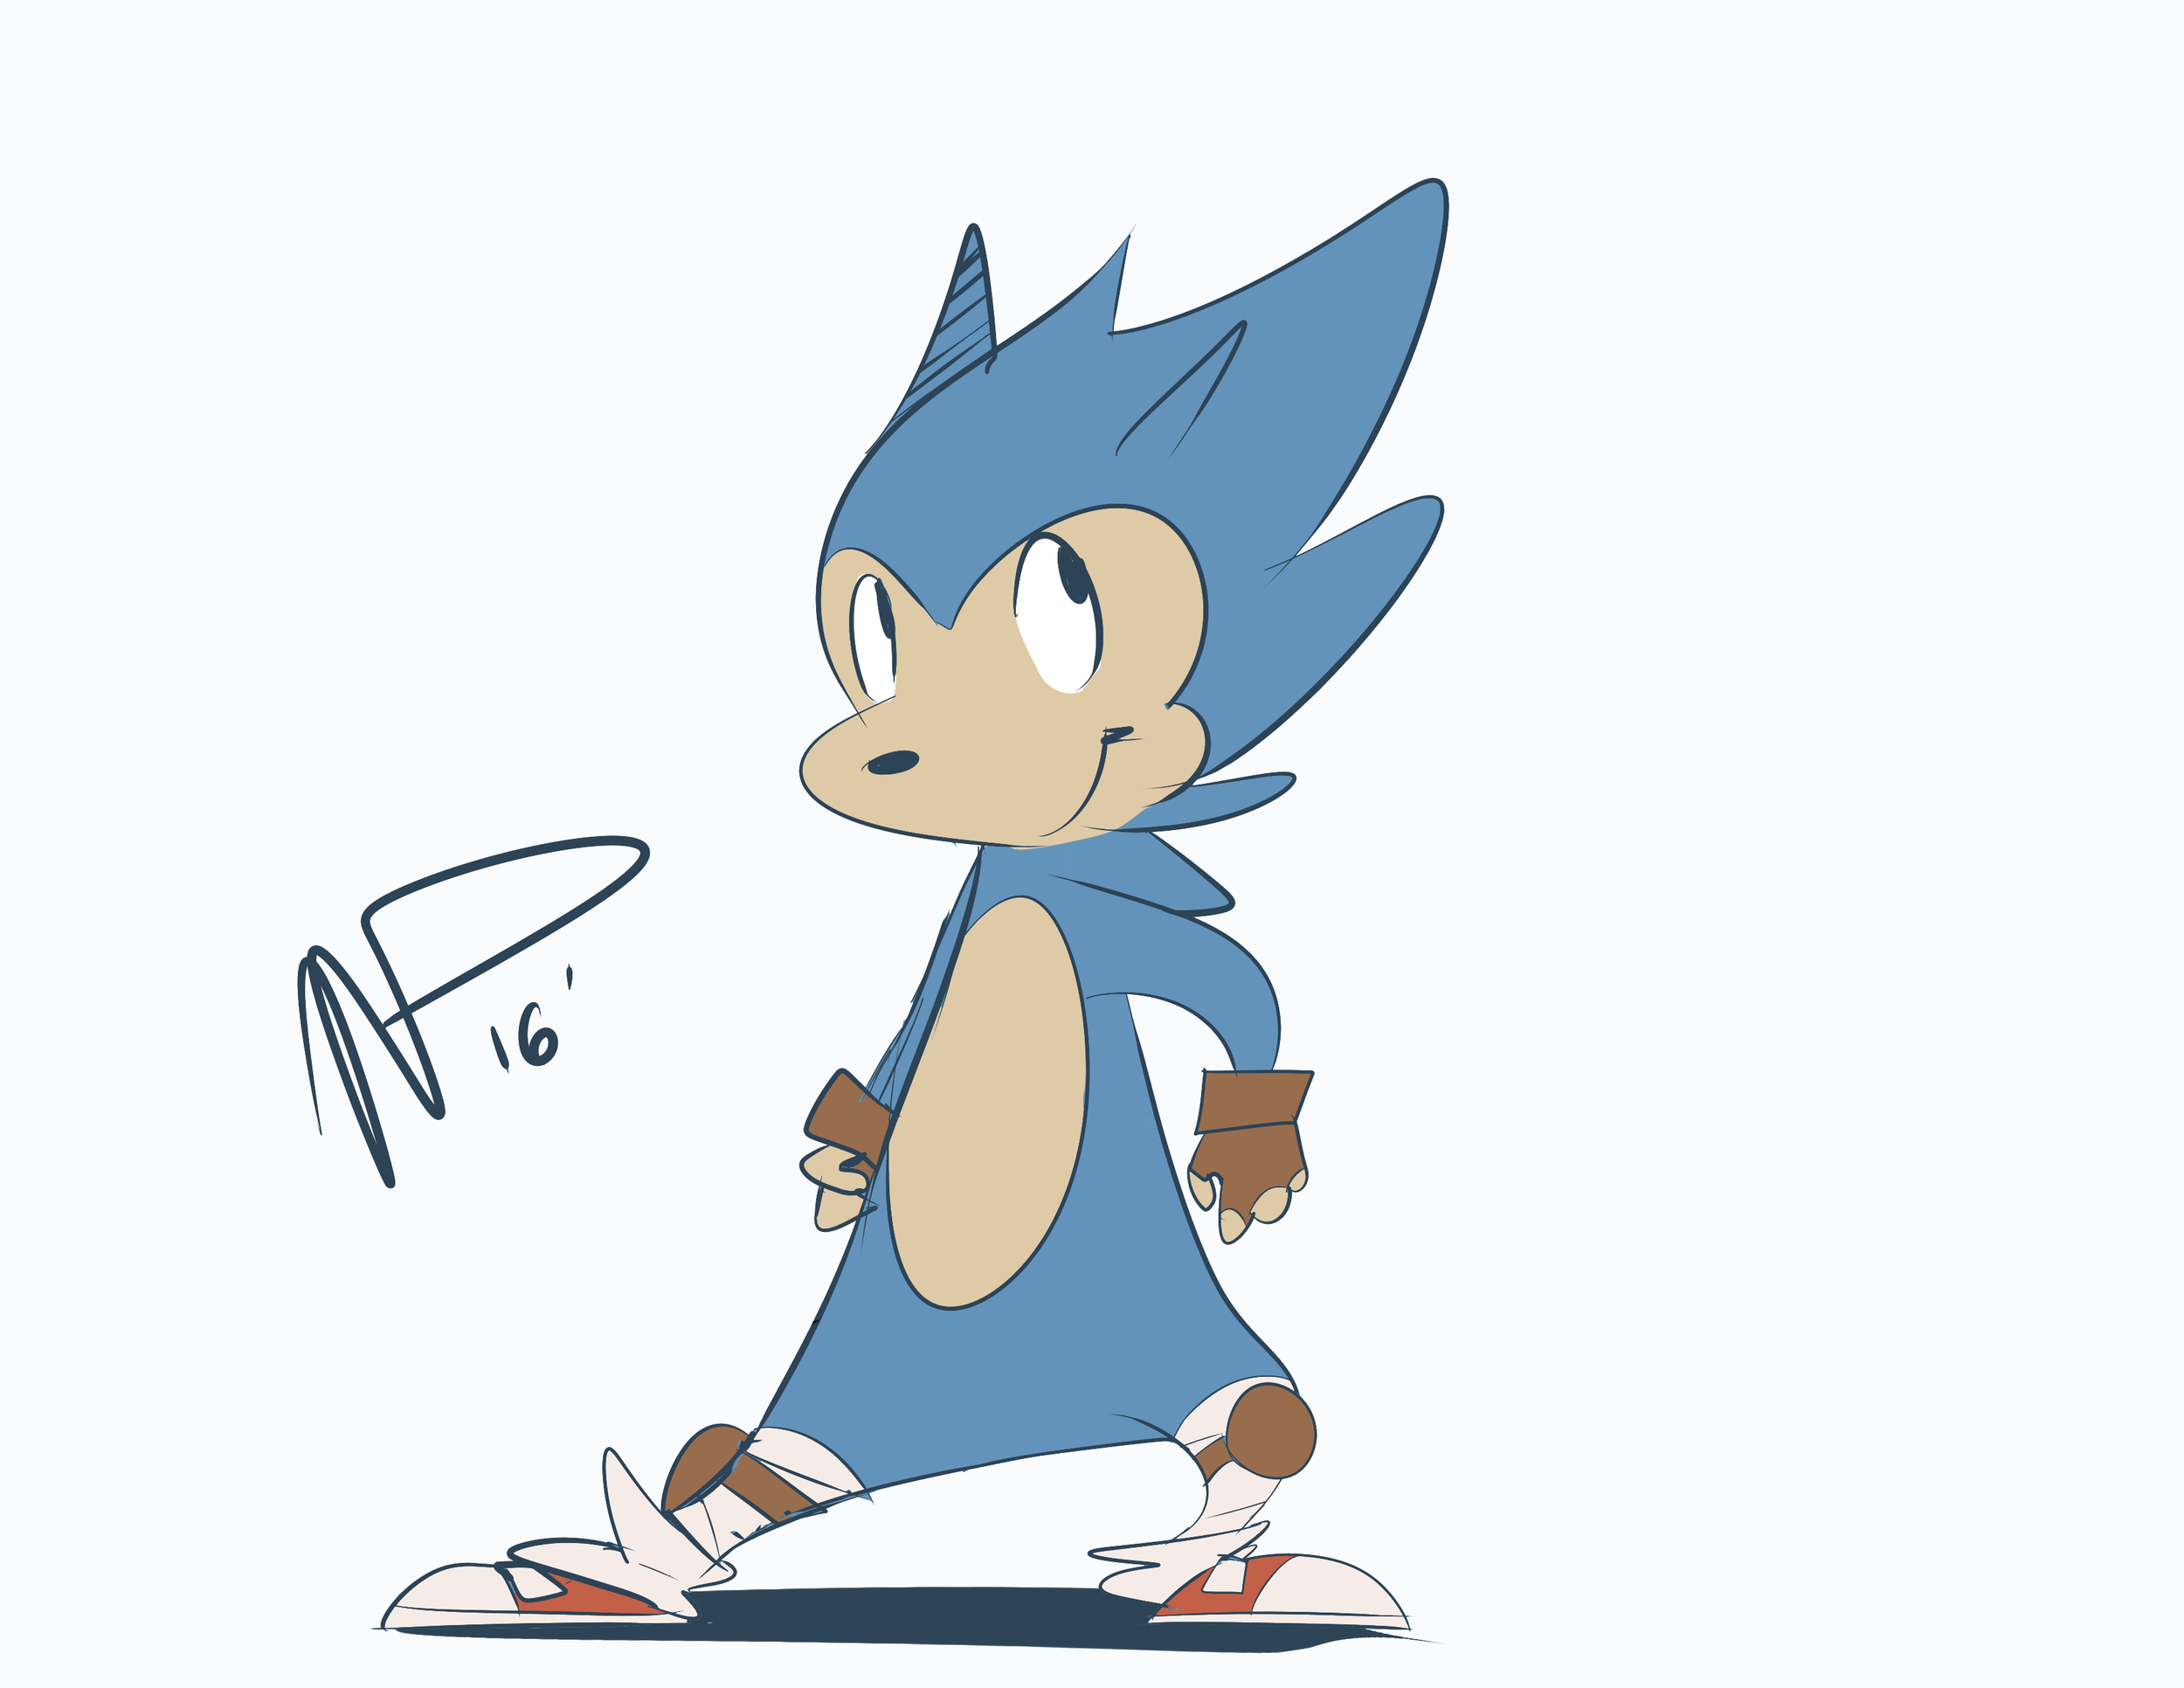 Sonic in someone's style to practice my cartooning.